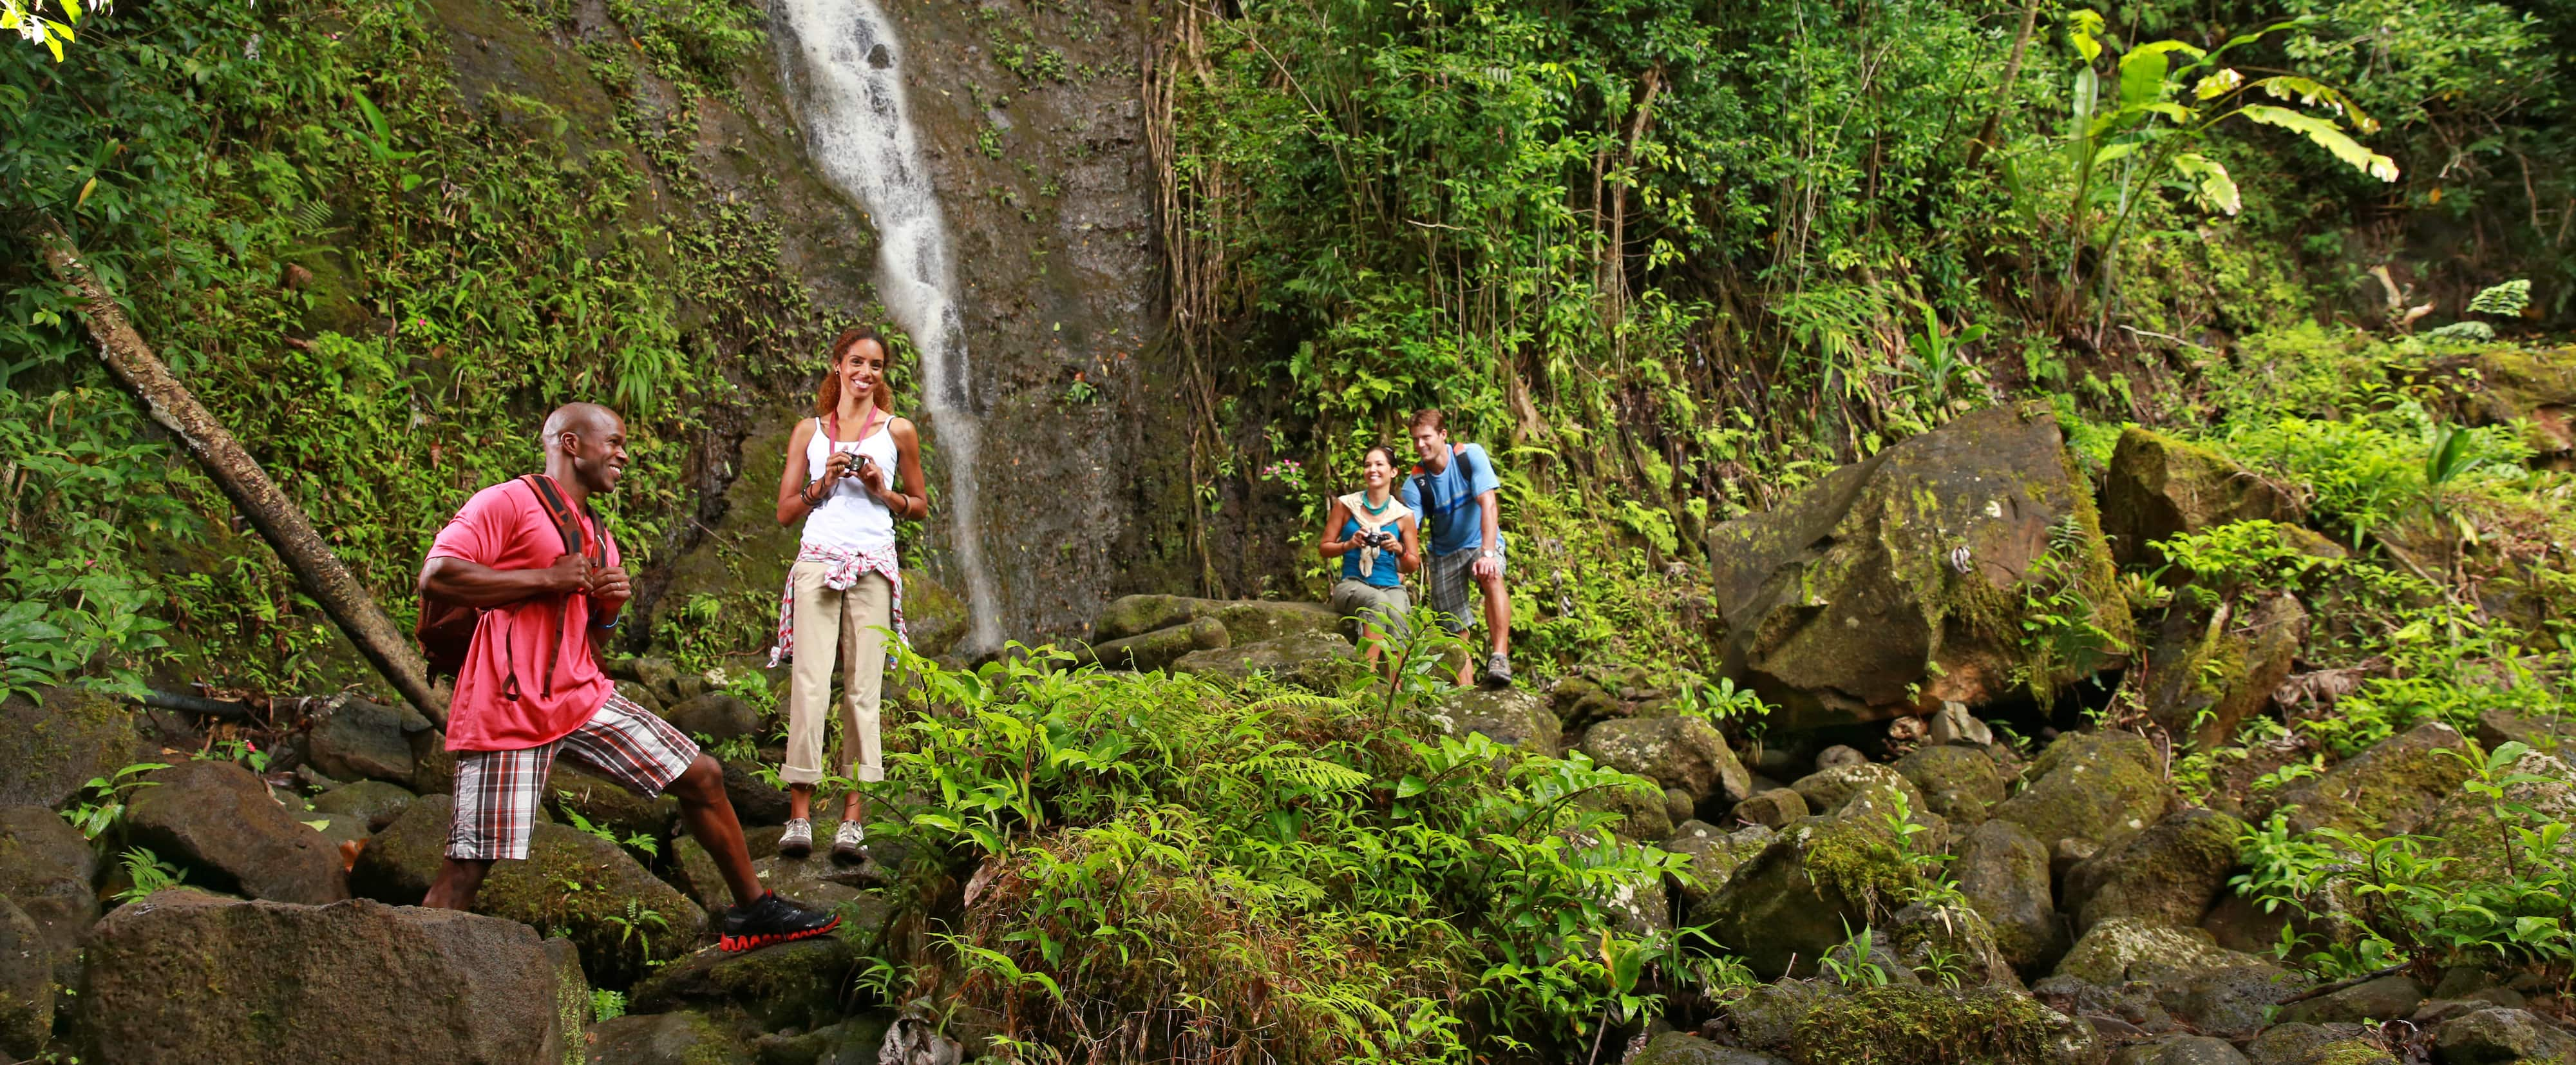 Couples admire a waterfall in the rainforest